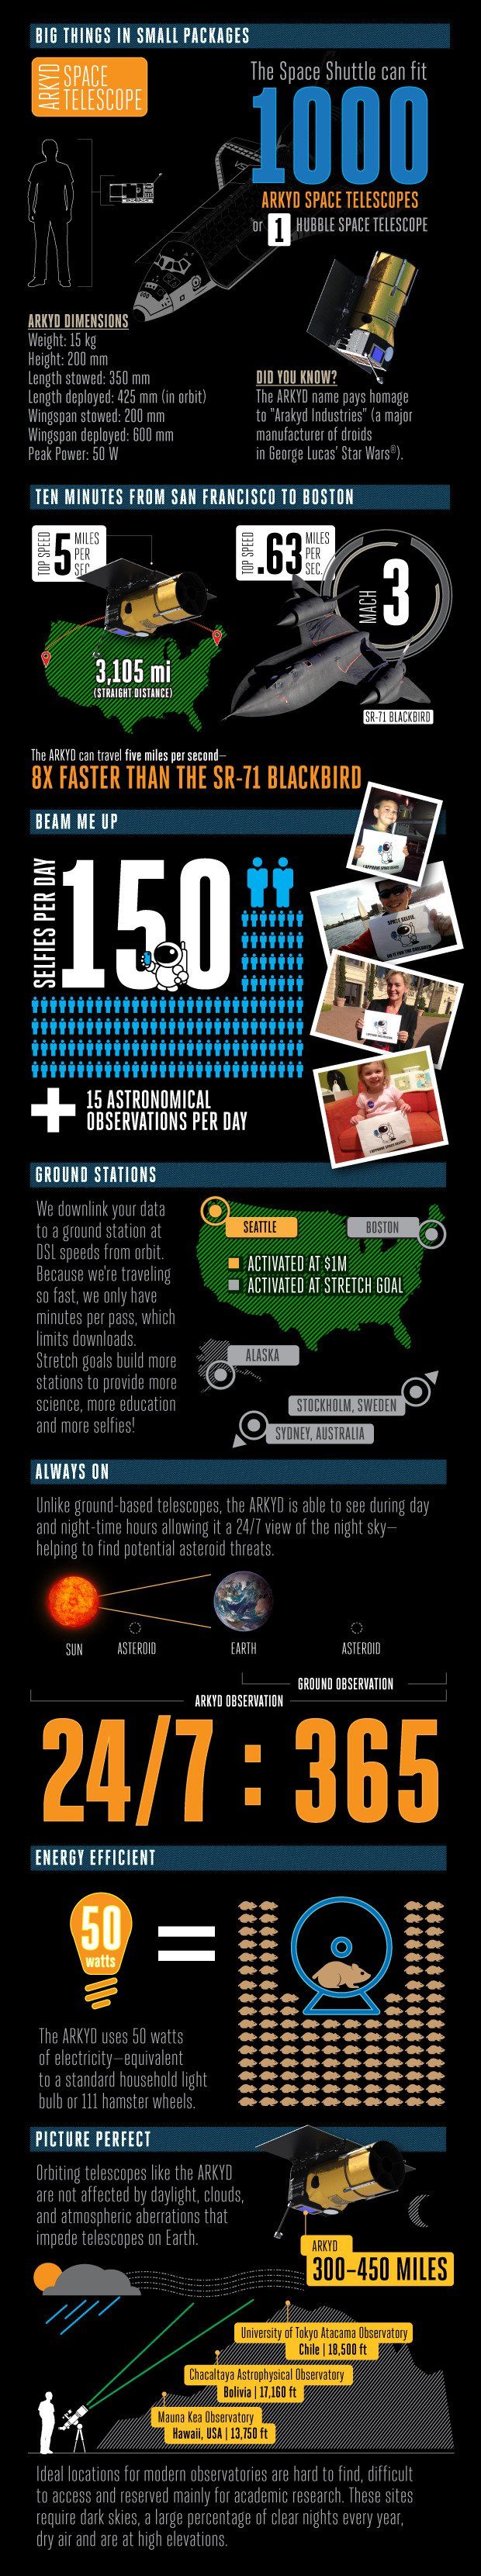 ARKYD infographic